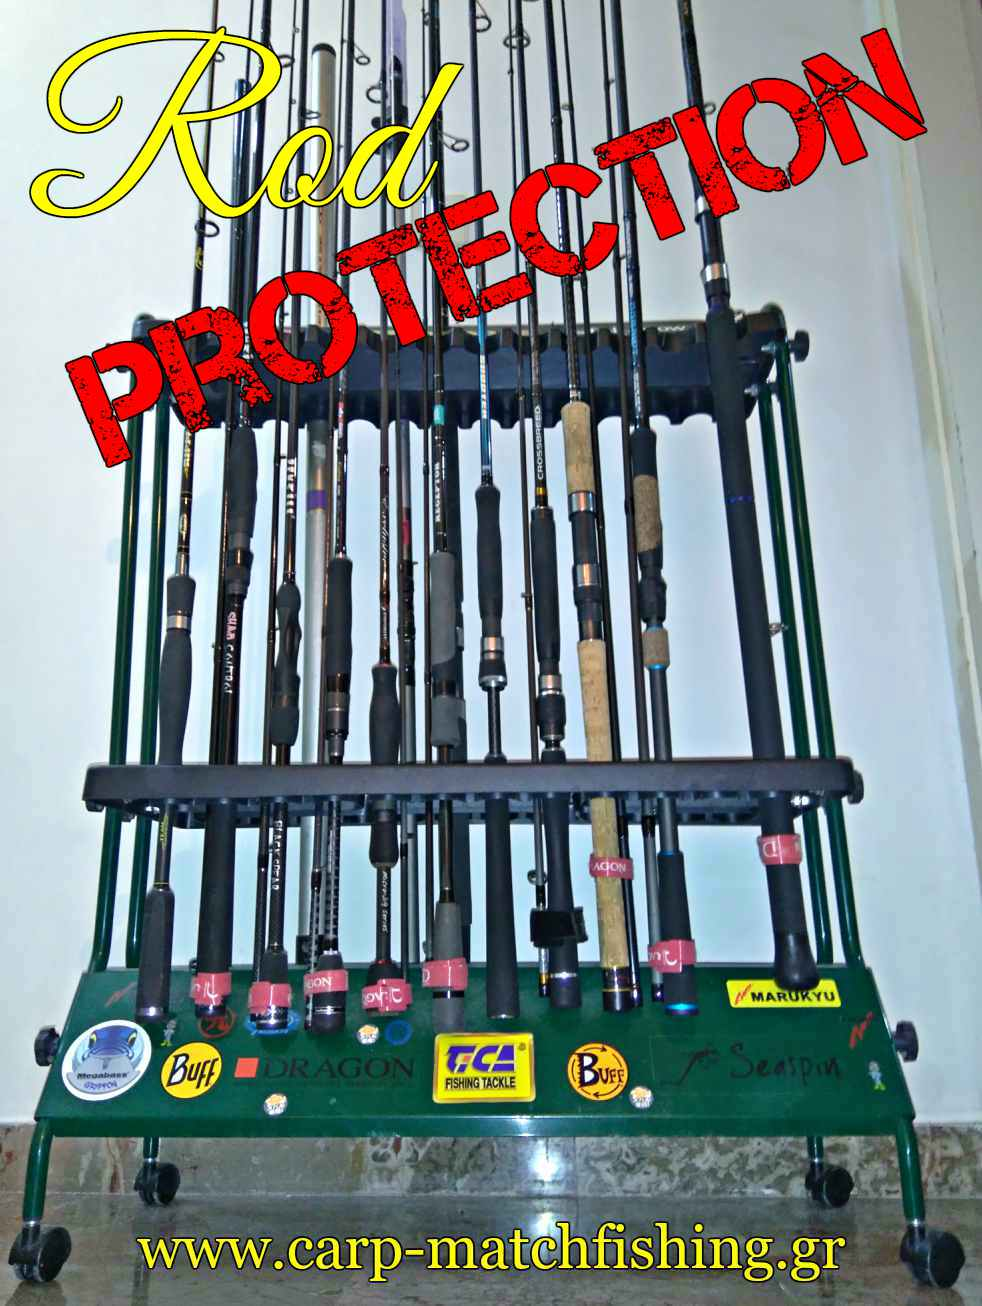 Fishing-rod-protection-stand-carpmatchfishing